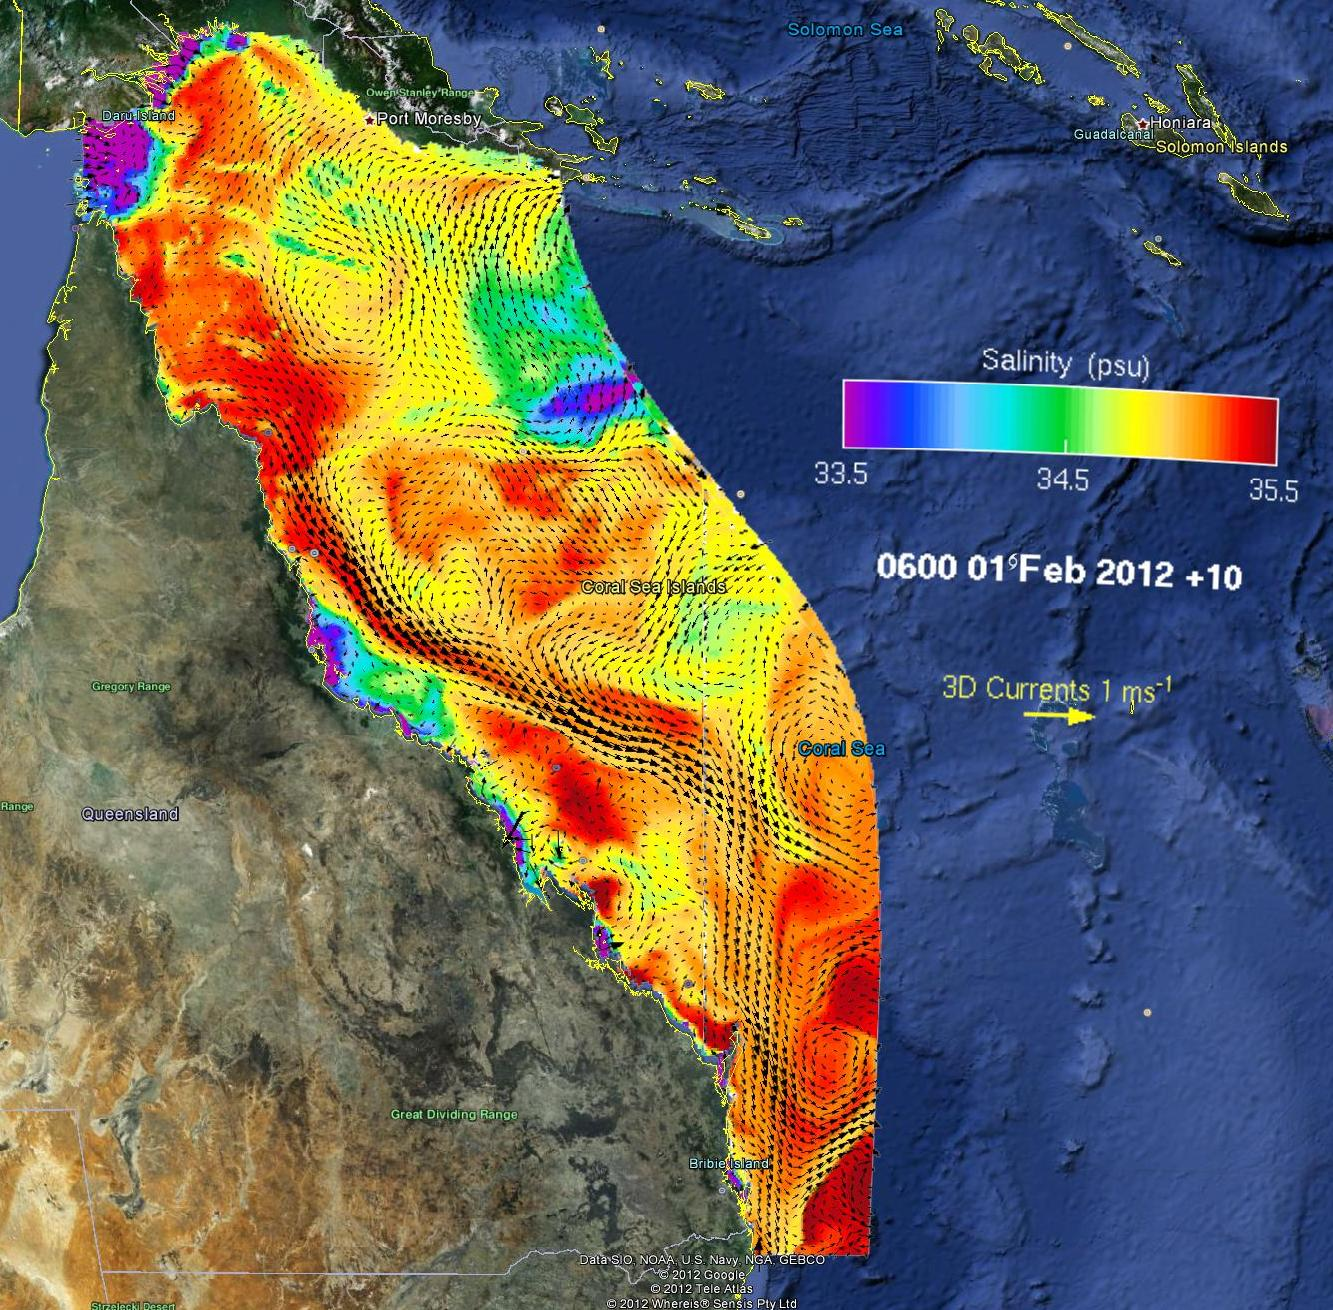 Outputs of eReefs displayed as a snapshot of key variables. This image shows salinity and ocean currents across the Great Barrier Reef.